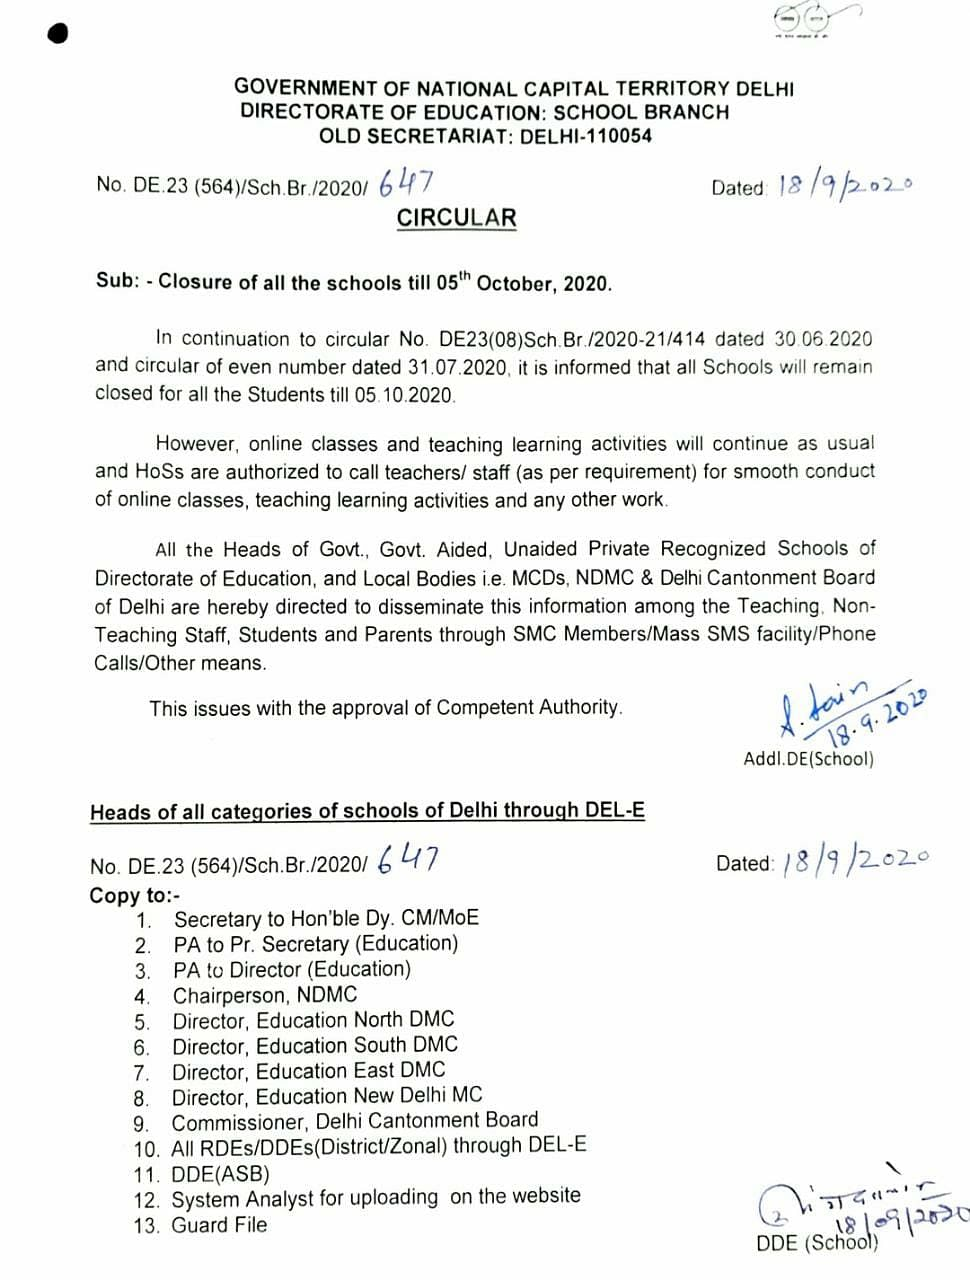 Delhi government's order on reopening of schools.